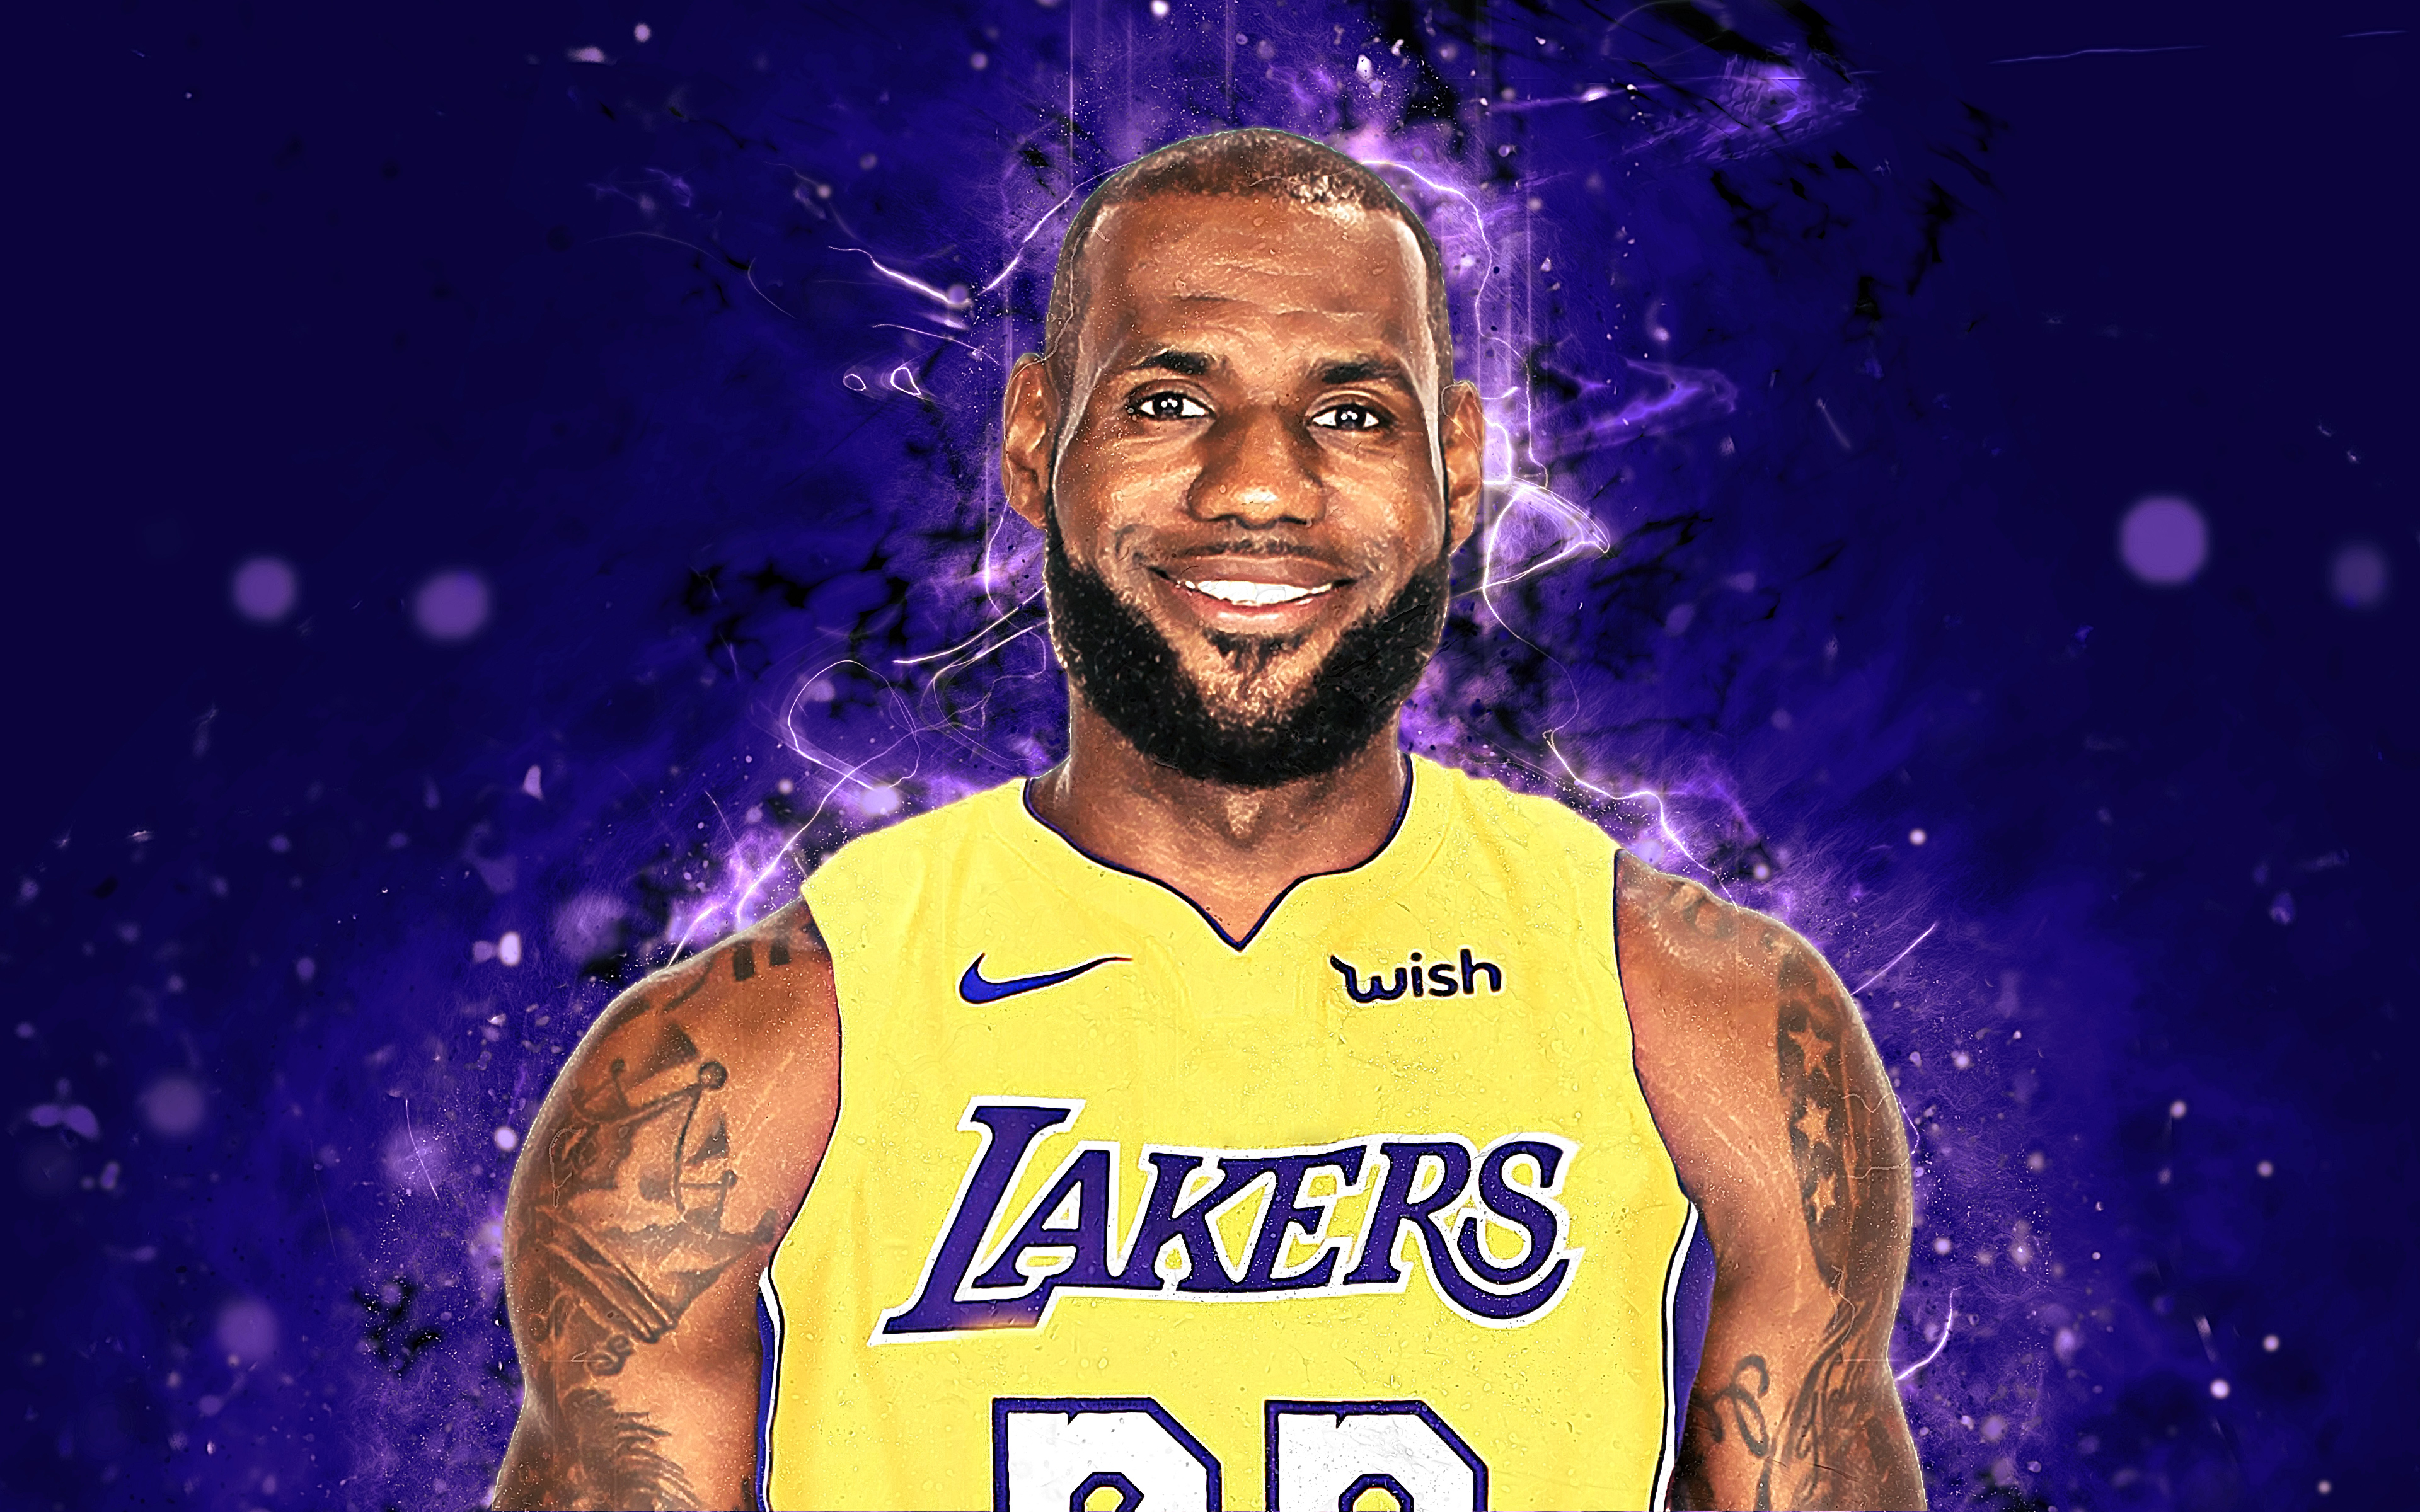 LeBron James 4k Ultra HD Wallpaper